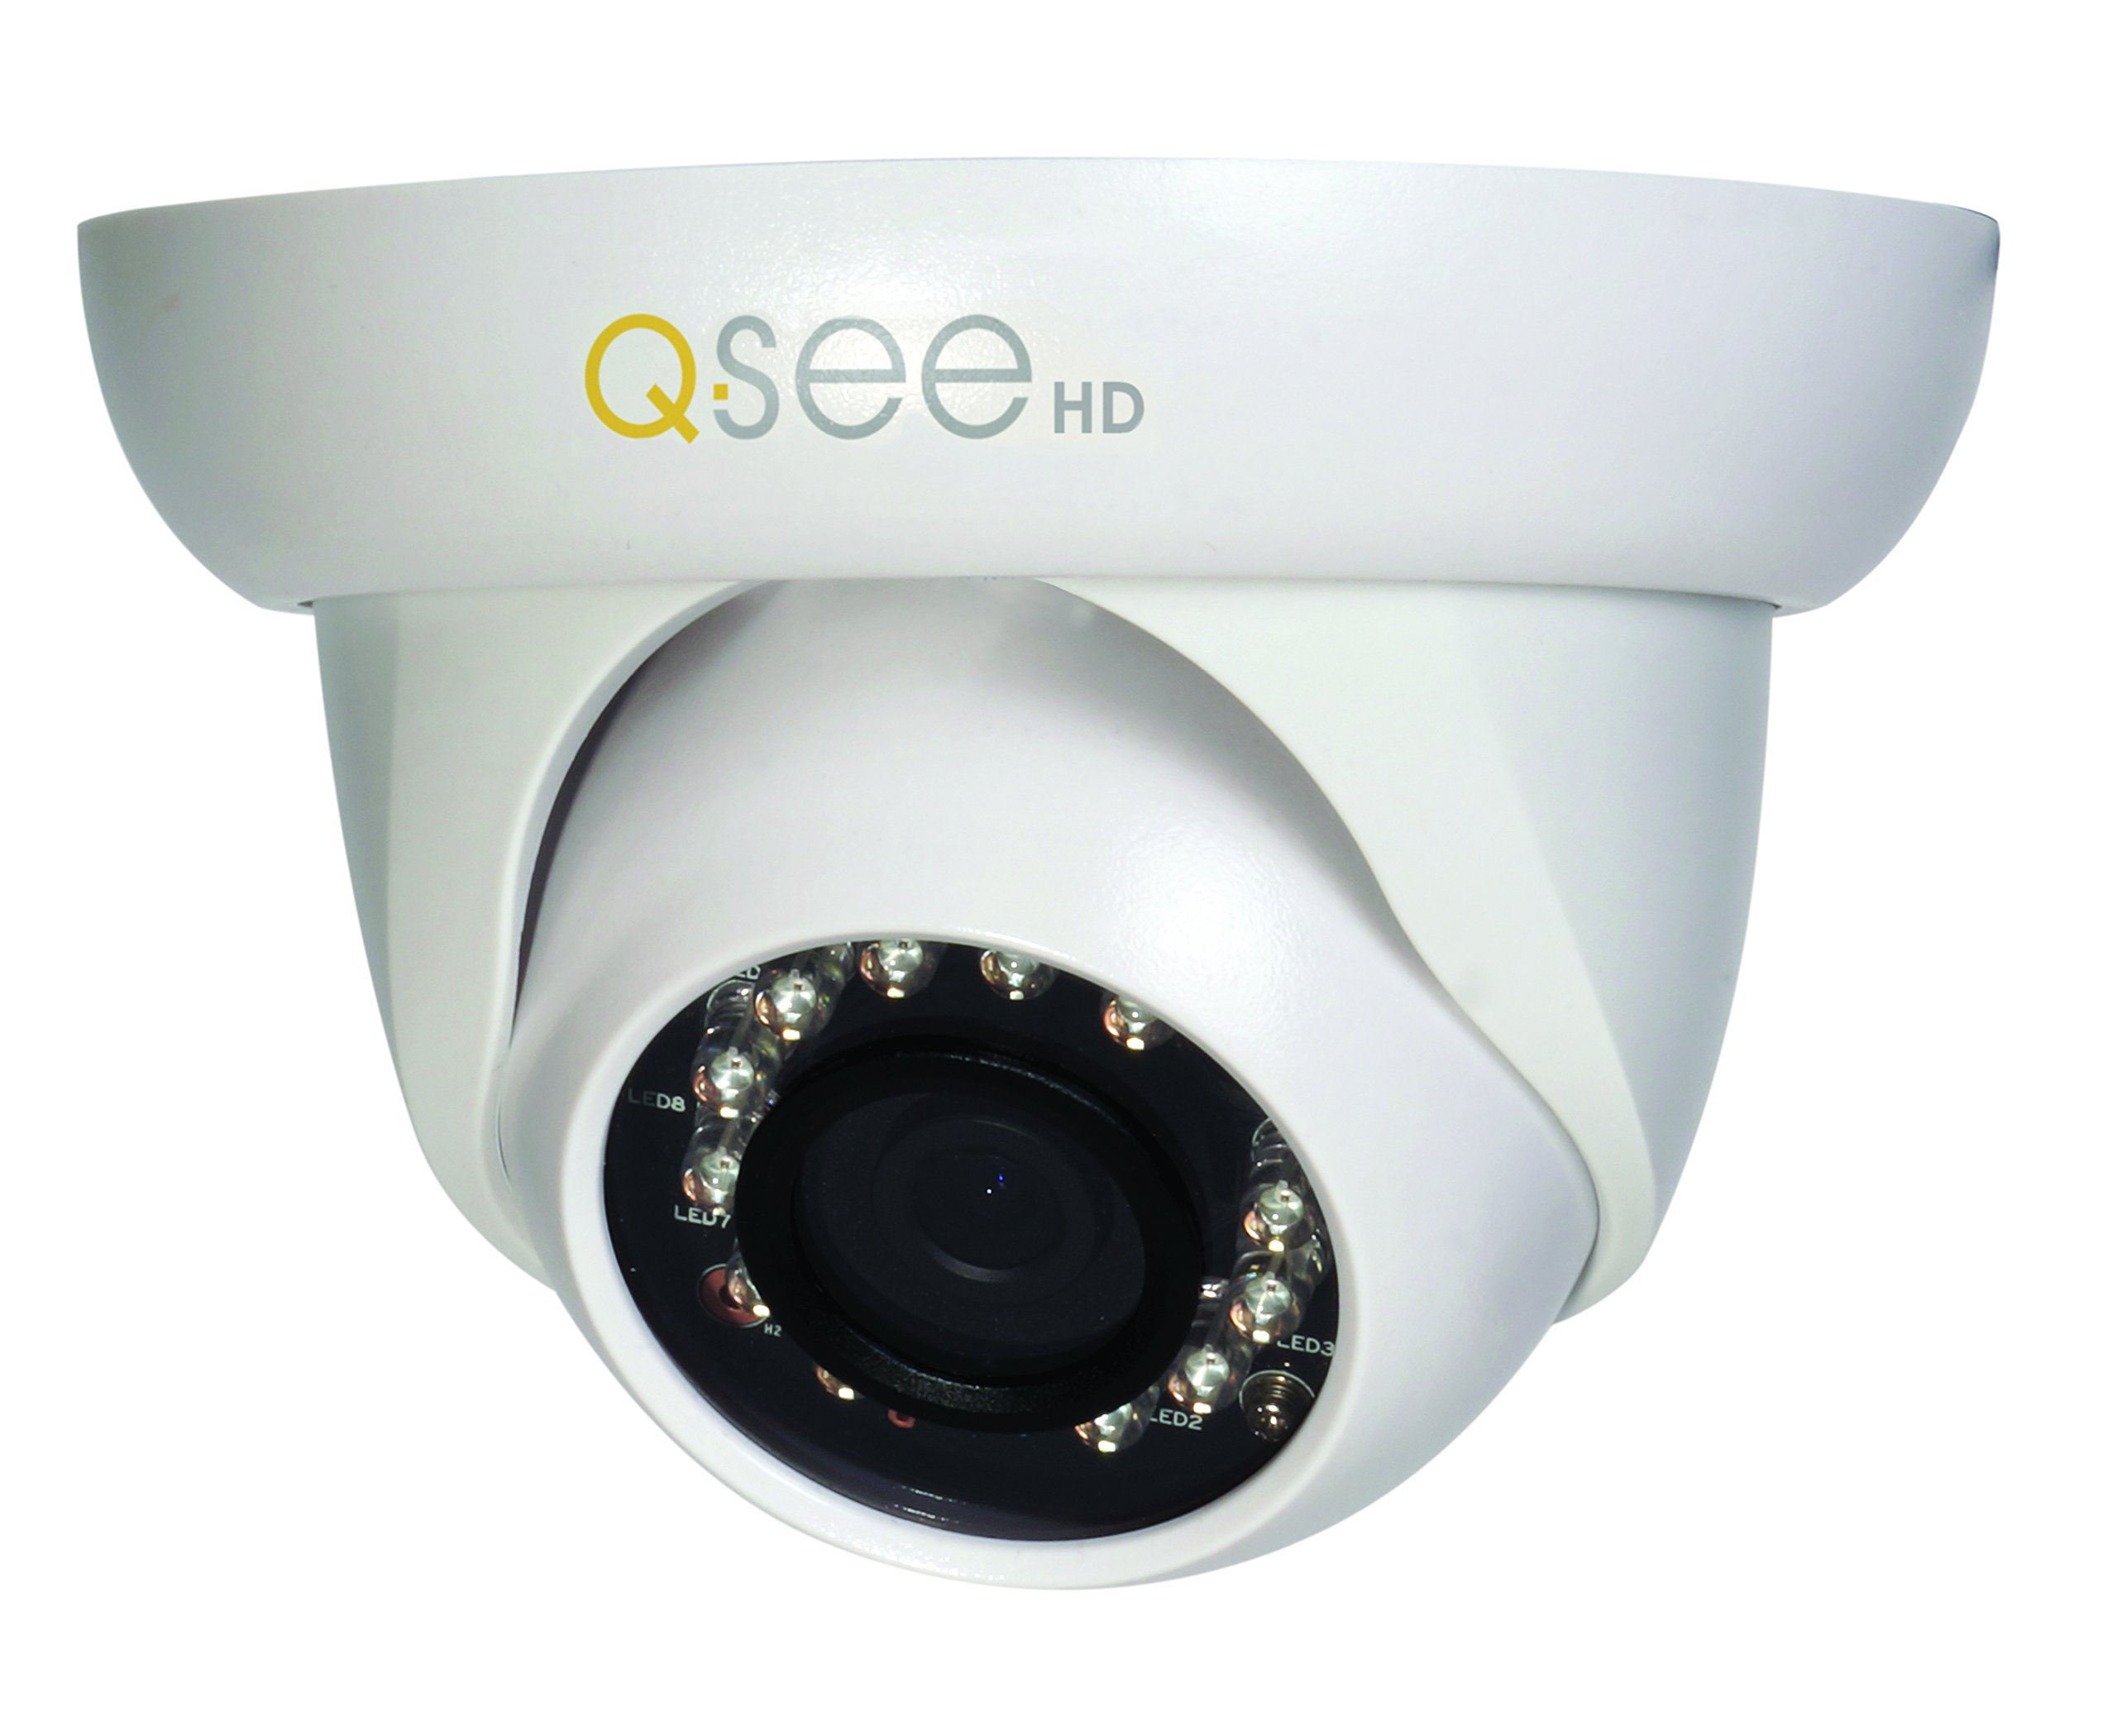 Q-See QCA7202D 720p High Definition Analog, Plastic Housing, Dome Security Camera (White)